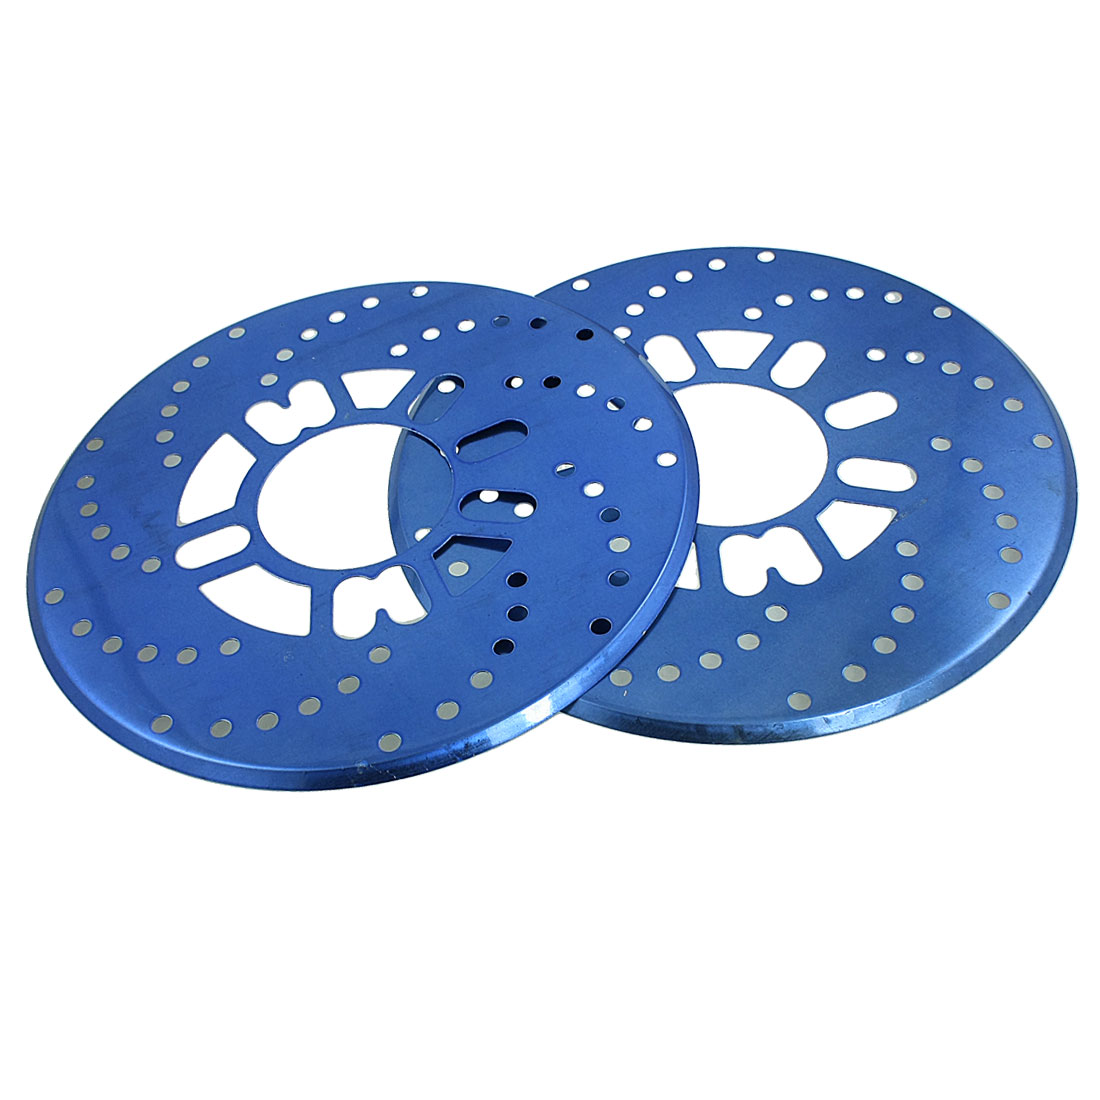 2 Pcs Auto Car Replacement Blue Aluminum Disc Brake Rotor Covers